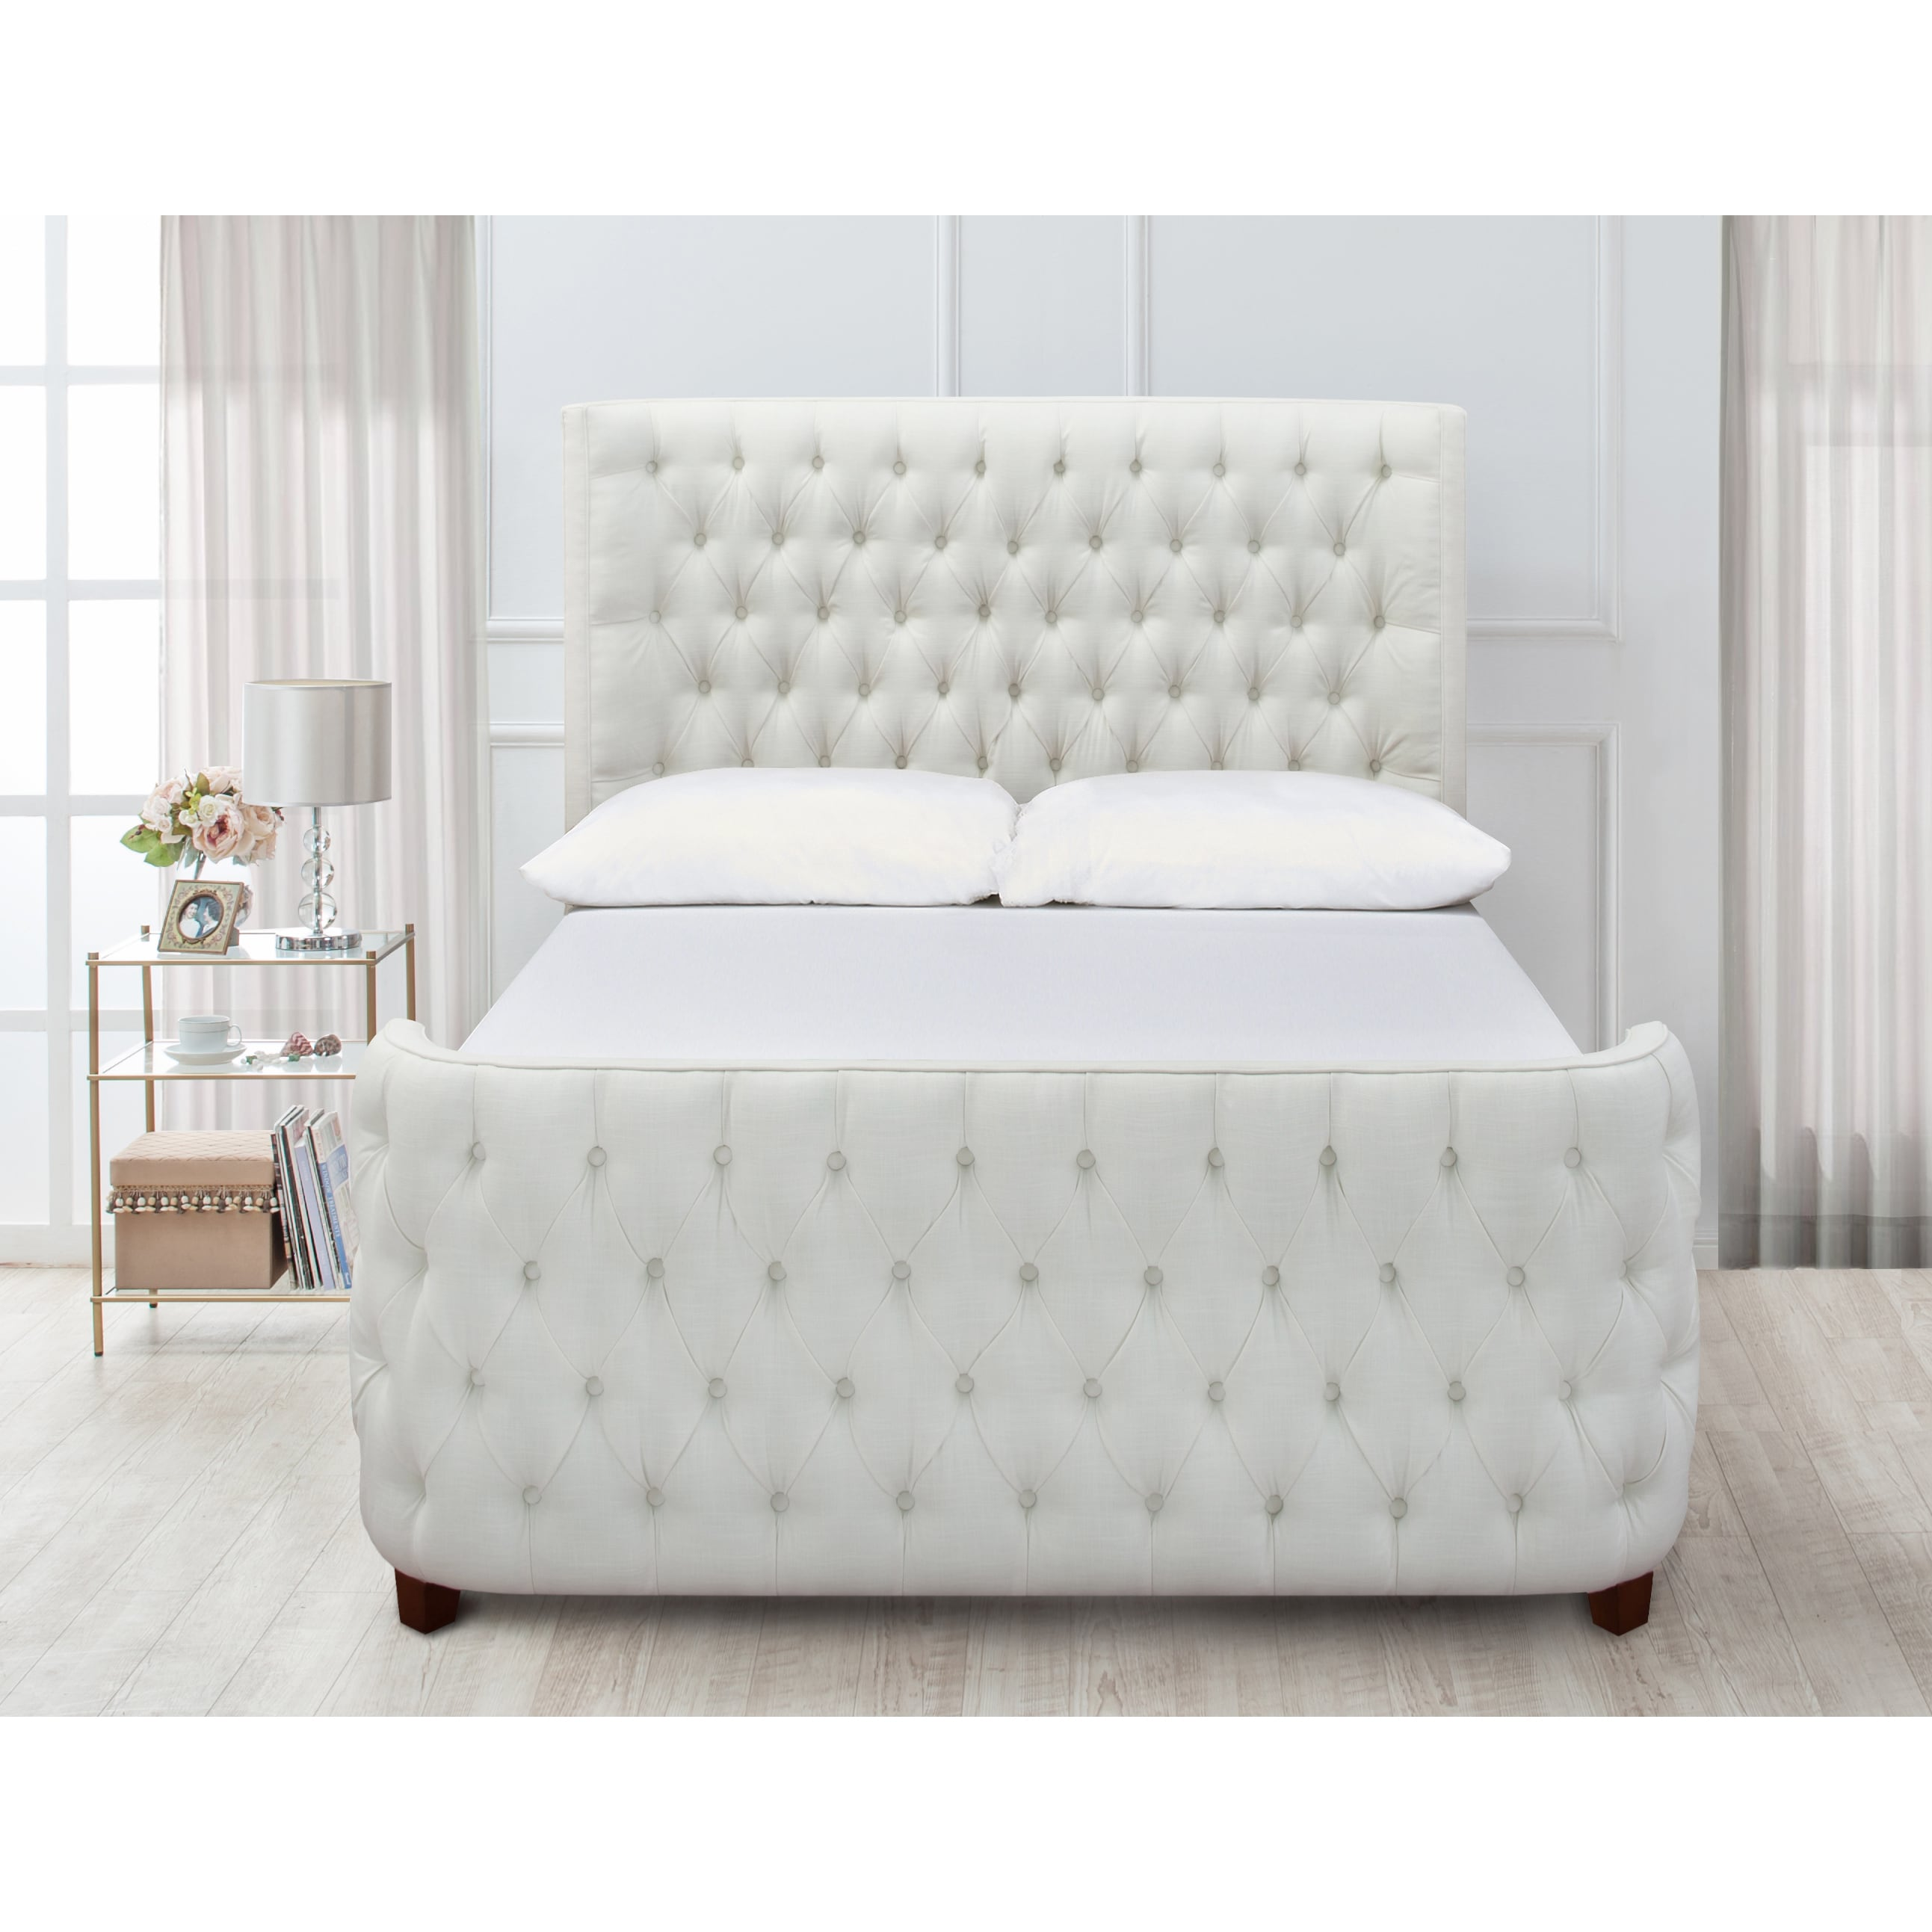 size ordinary platform headboard sets tufted quilted frames canopy for with room bed of only and beds project king queens bedroom queen mattress frame leather trick upholstered image wood headboards board cheap tips white black padded full bookcase fabric build